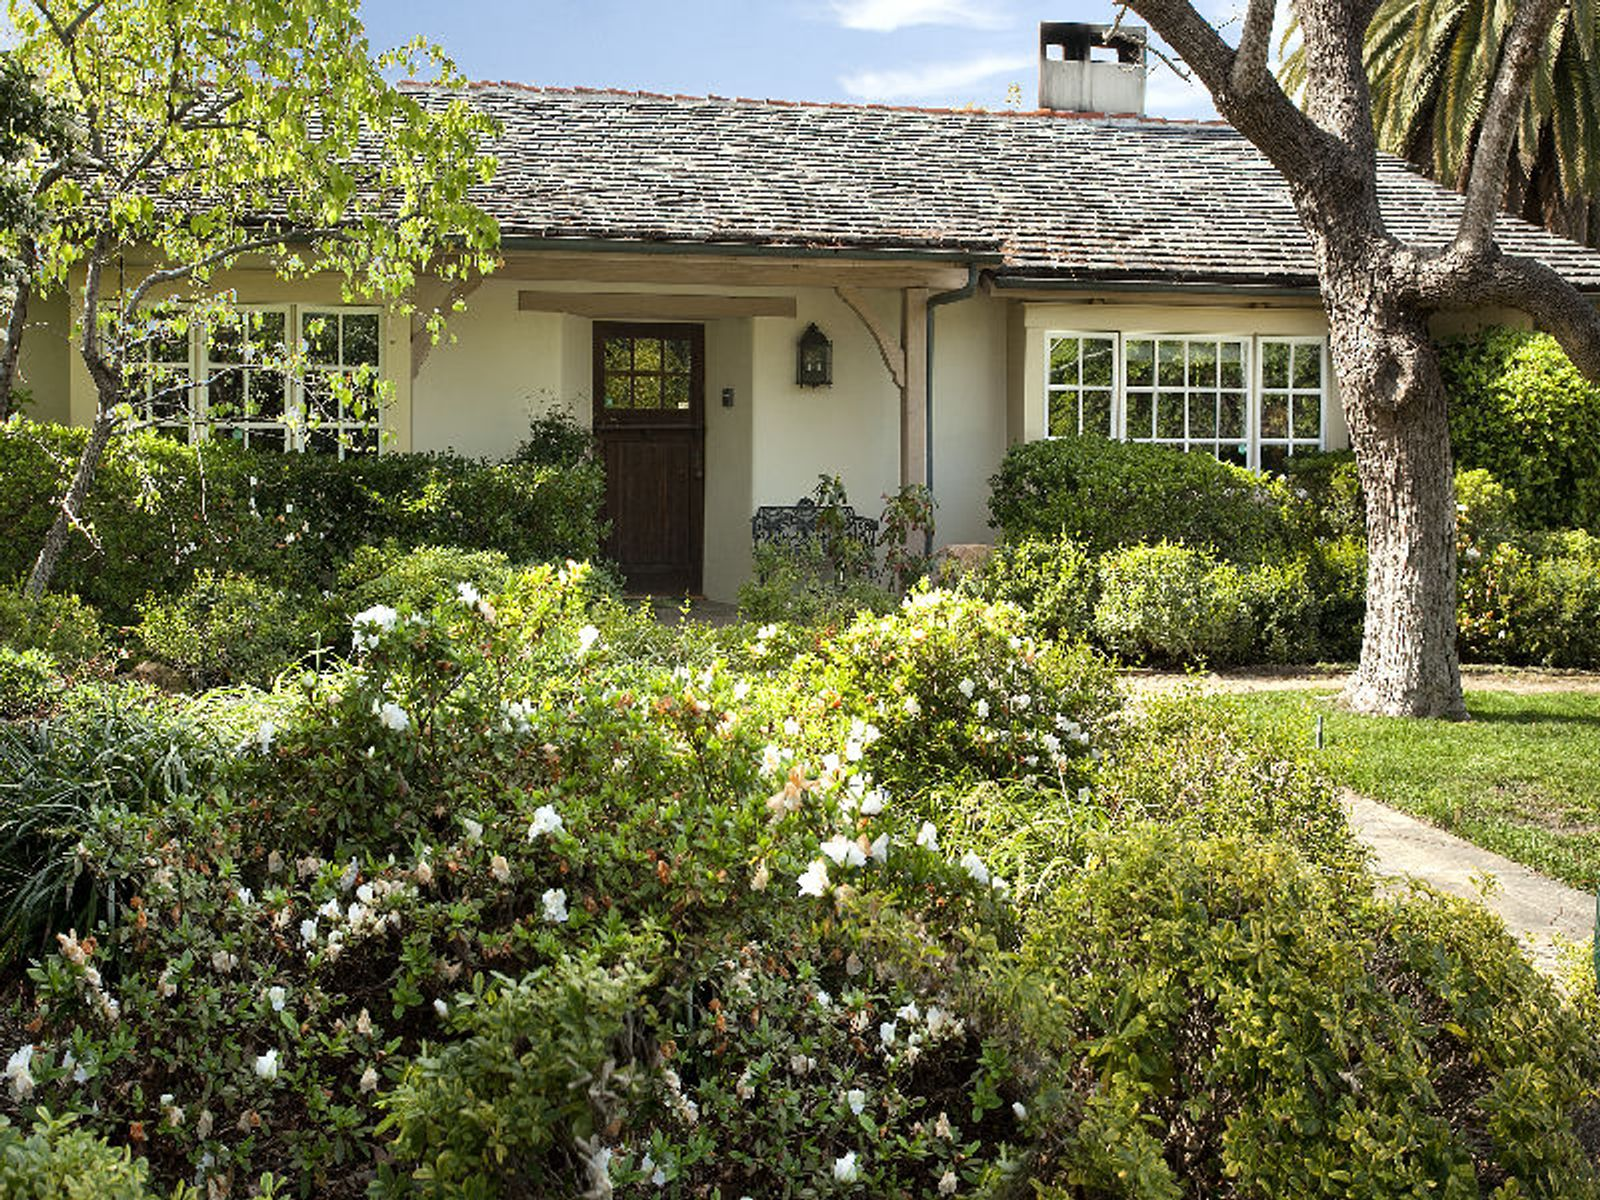 Elegant  French Country-style, Santa Barbara CA Single Family Home - Santa Barbara Real Estate